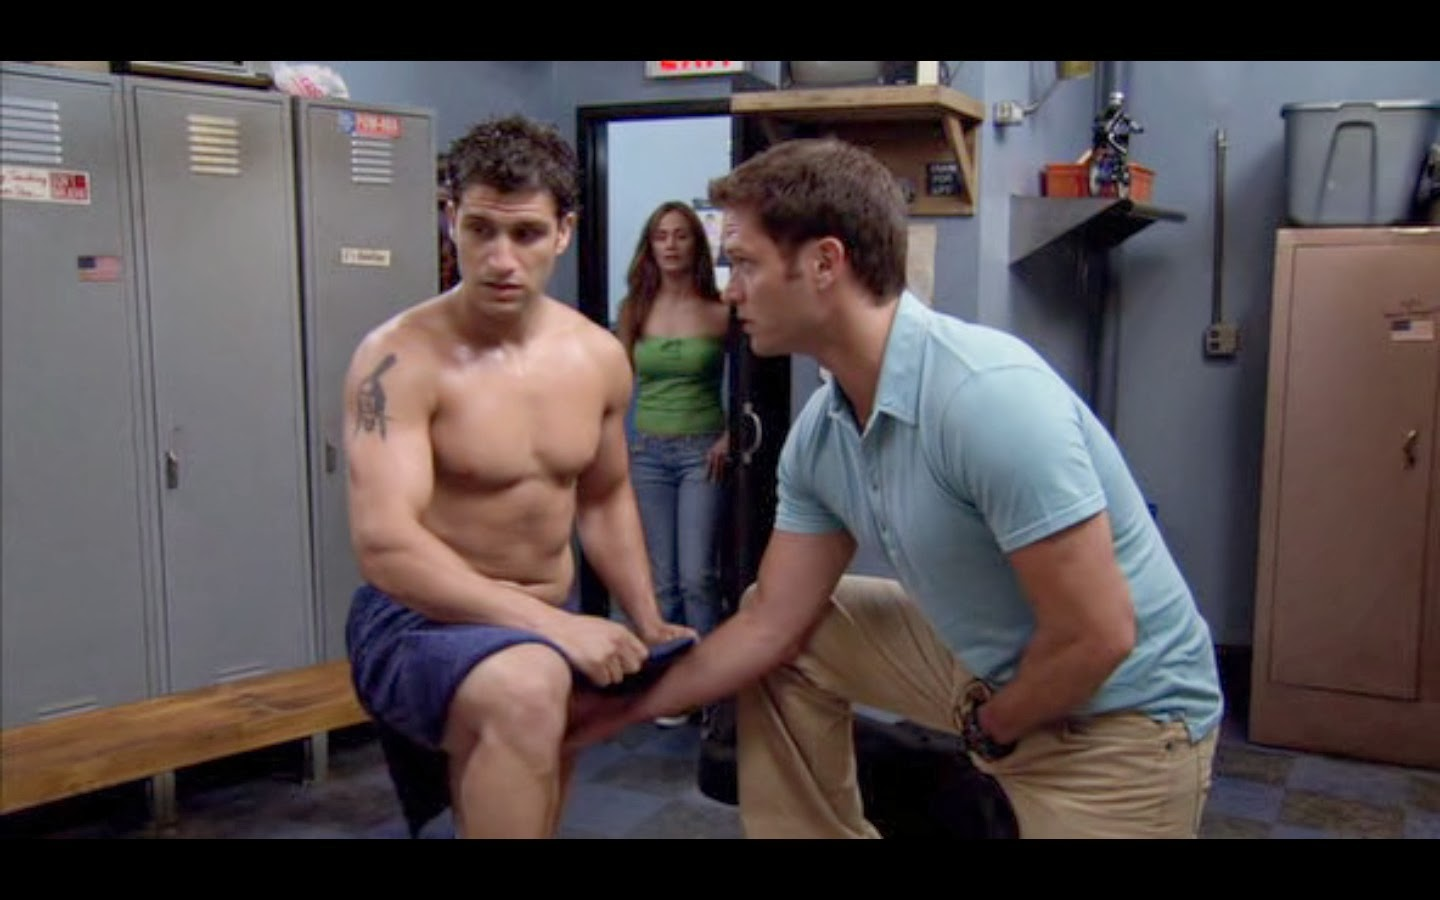 Naked Male Actors michael lombardi archives - male celebs blog